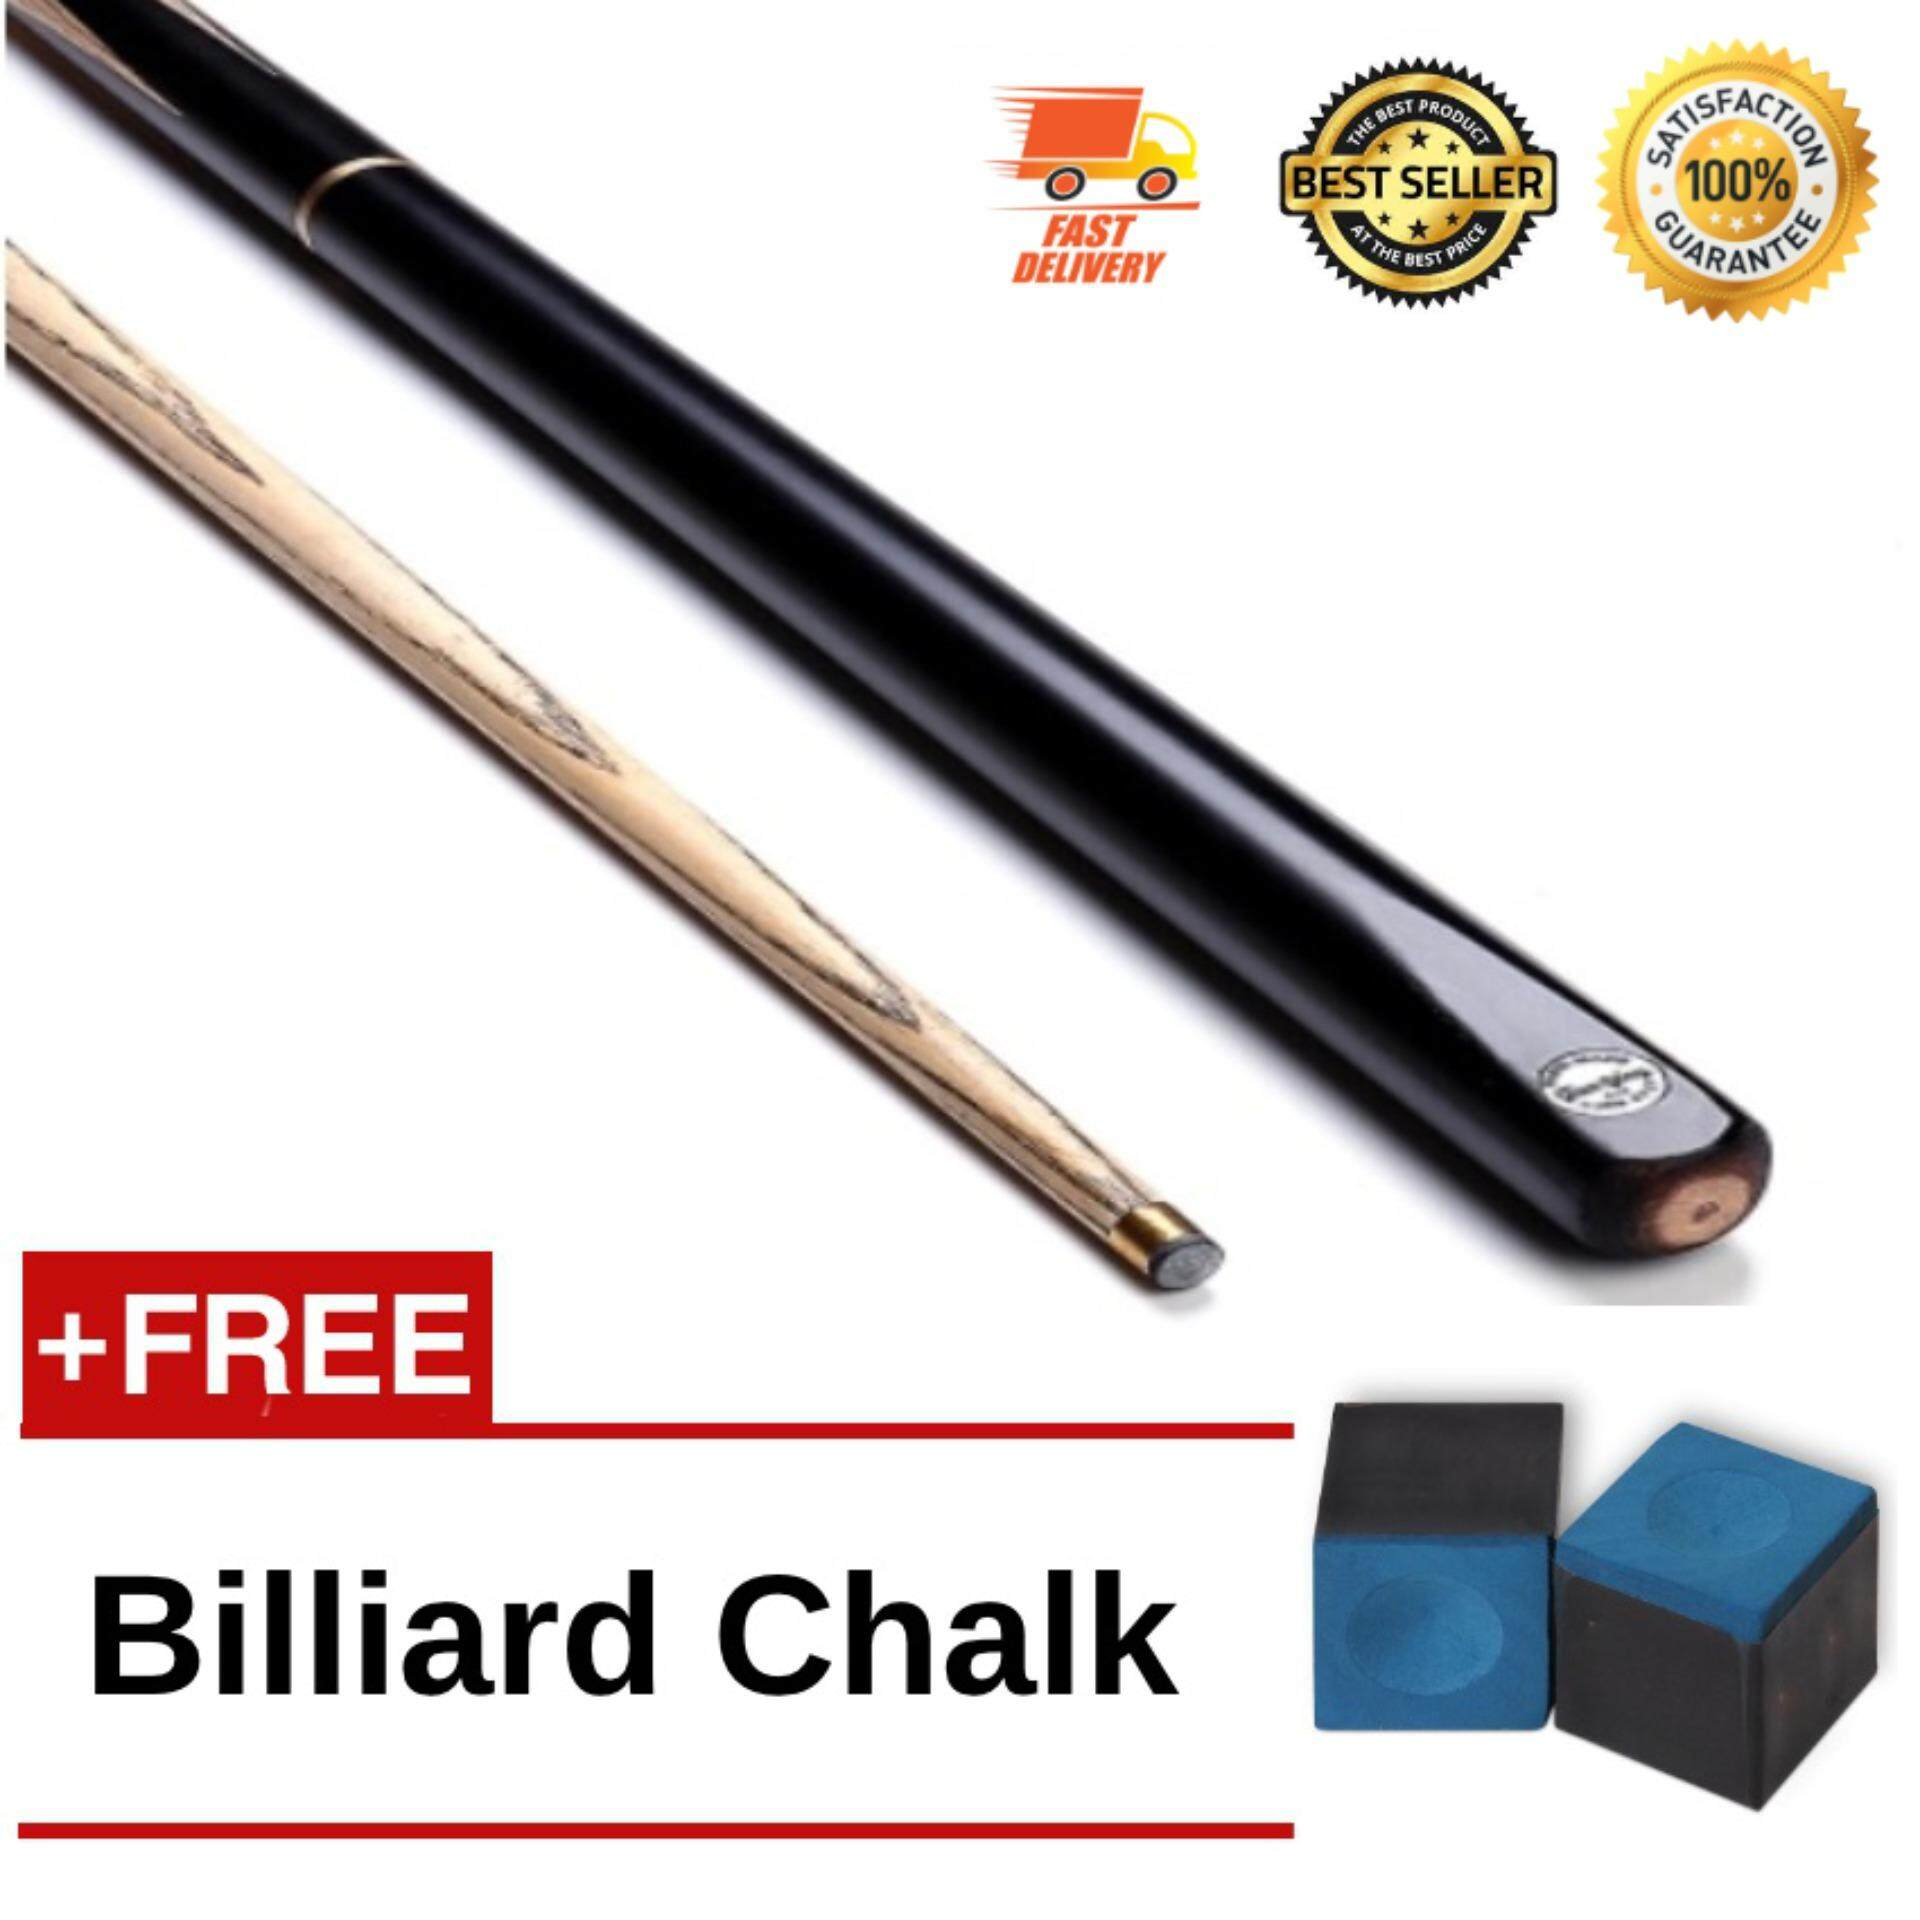 Original Billiards 3/4 Jointed Snooker Cue 145cm 2-parts